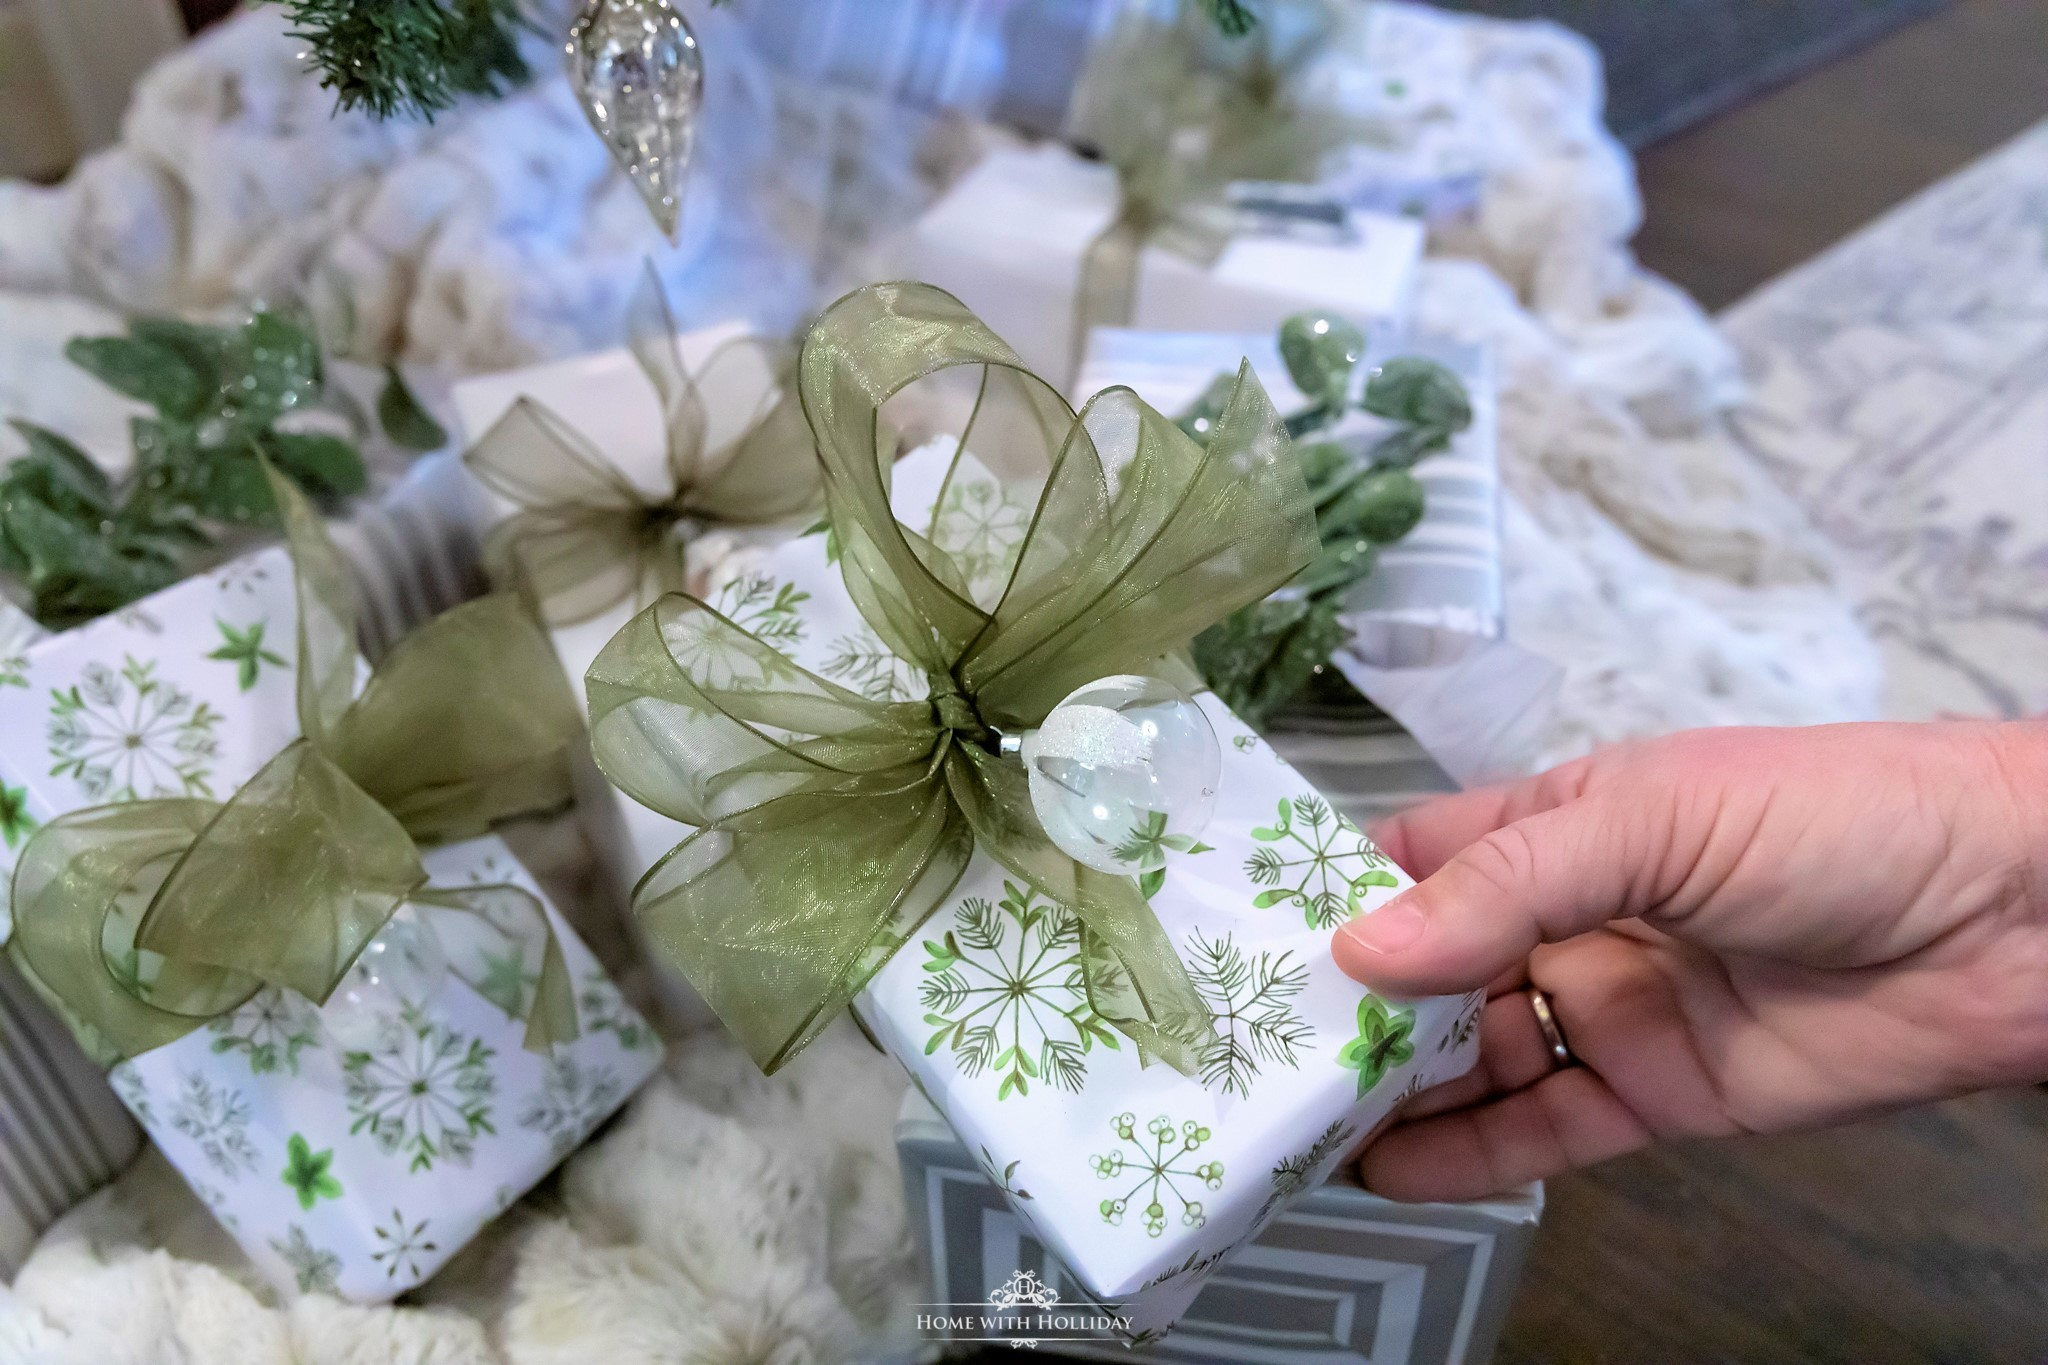 Gift wrapping ideas for my Green and White Winter Christmas Tree - Home with Holliday